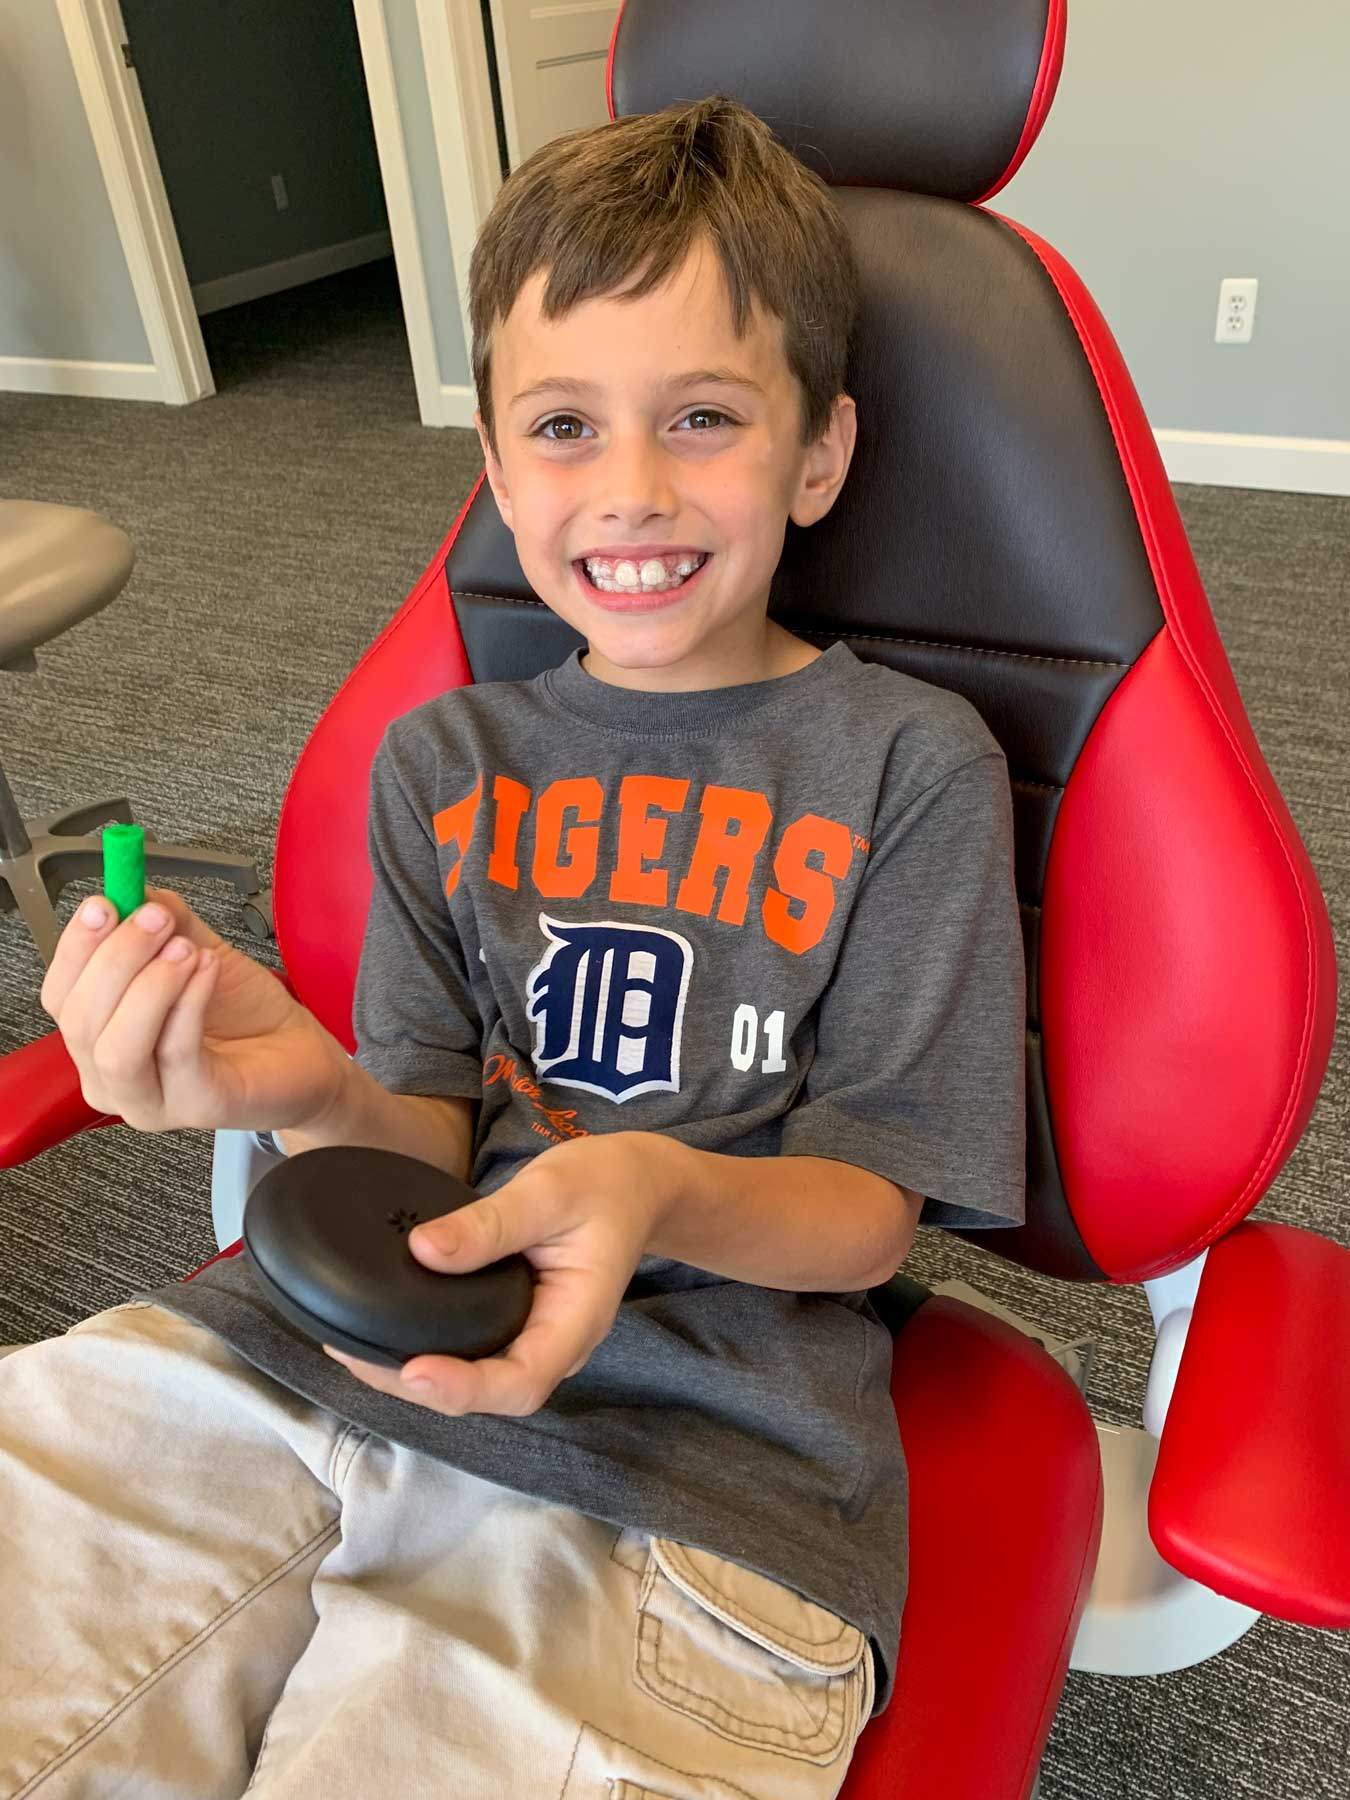 Little boy on orthodontist chair